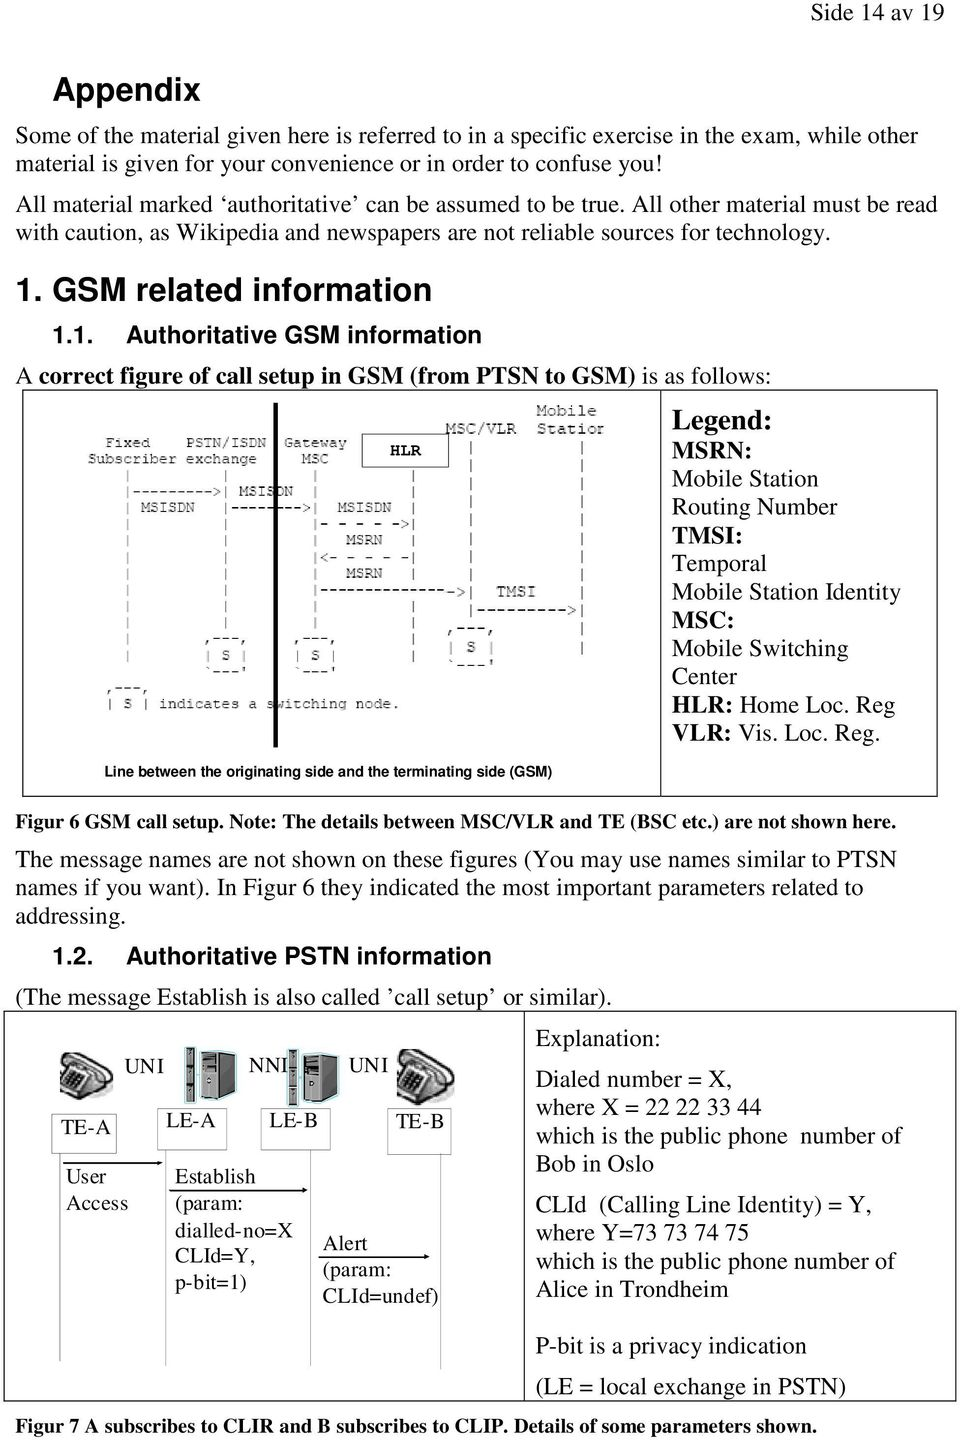 11 Authoritative GSM information A correct figure of call setup in GSM (from PTSN to GSM) is as follows: HLR Line between the originating side and the terminating side (GSM) Legend: MSRN: Mobile